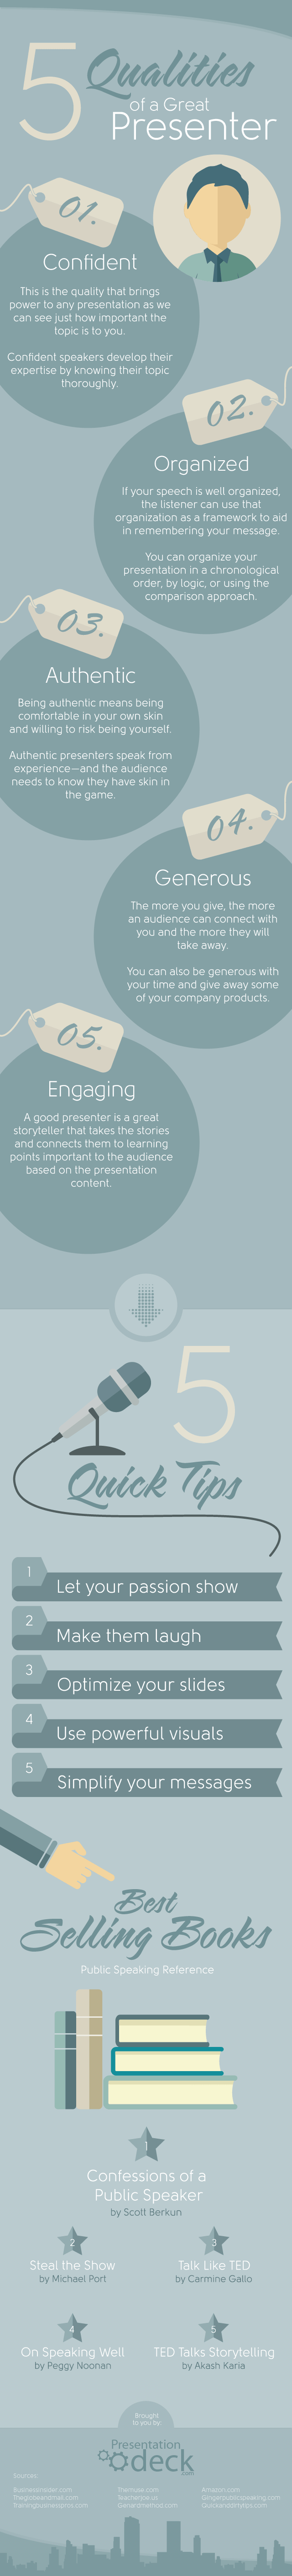 5-qualities-of-a-great-presenter